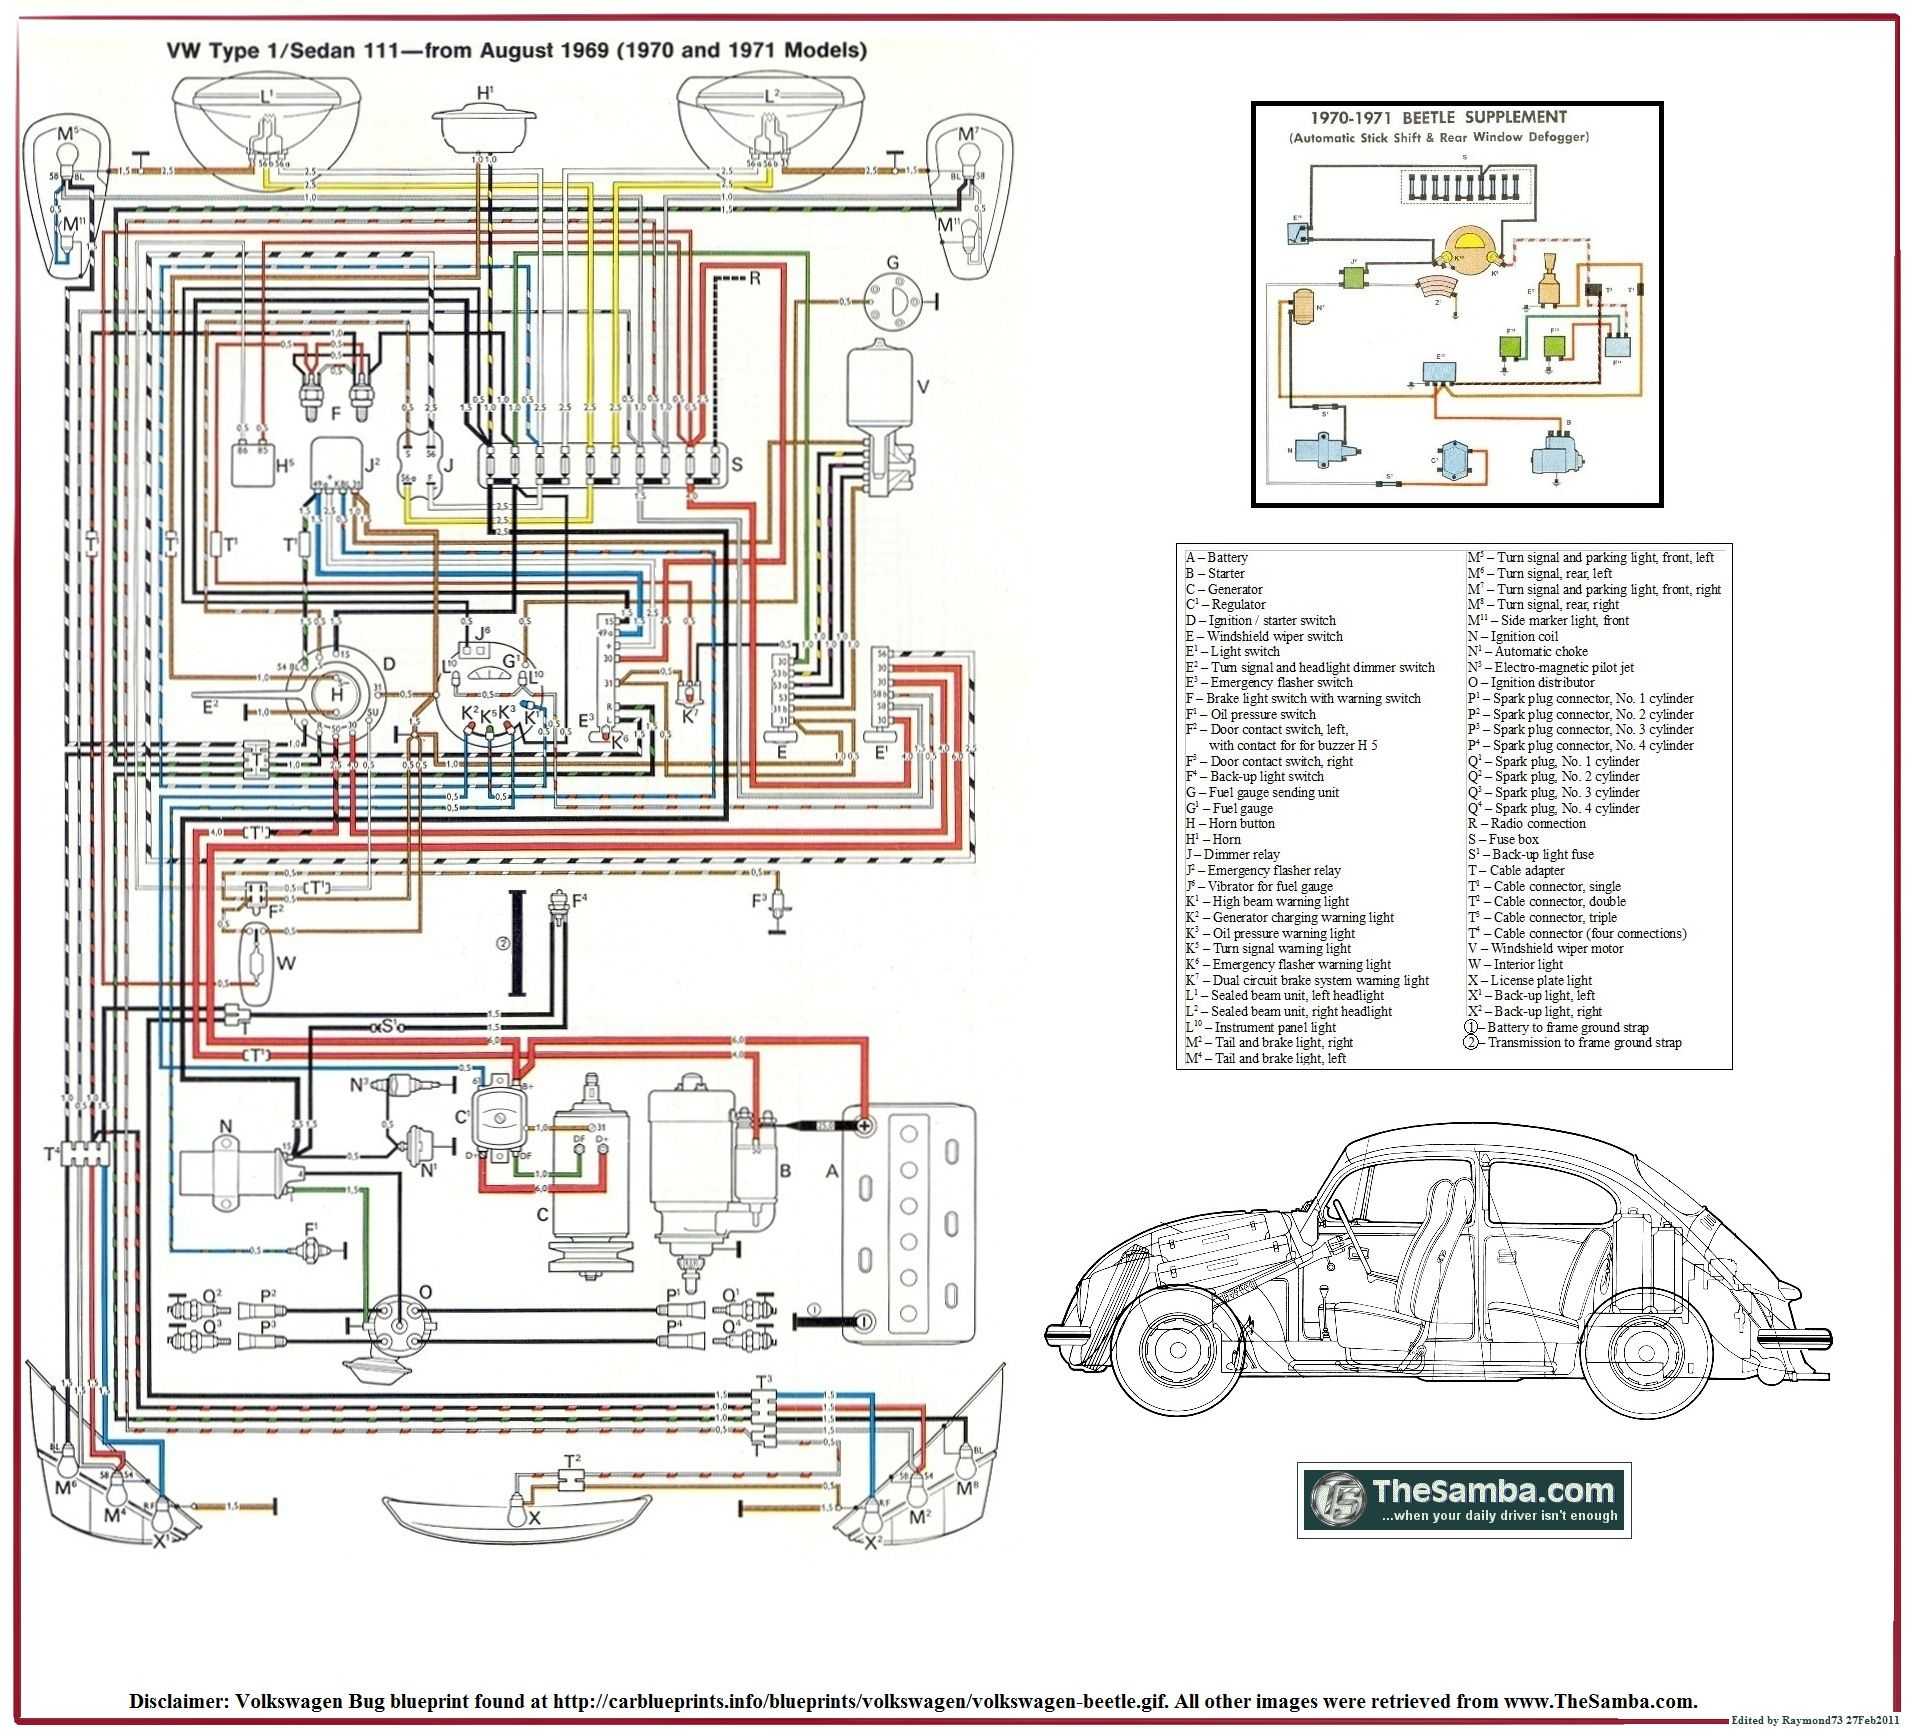 lovely 1999 vw beetle wiring diagram 79 for your esp ltd New Beetle Wiring Diagram